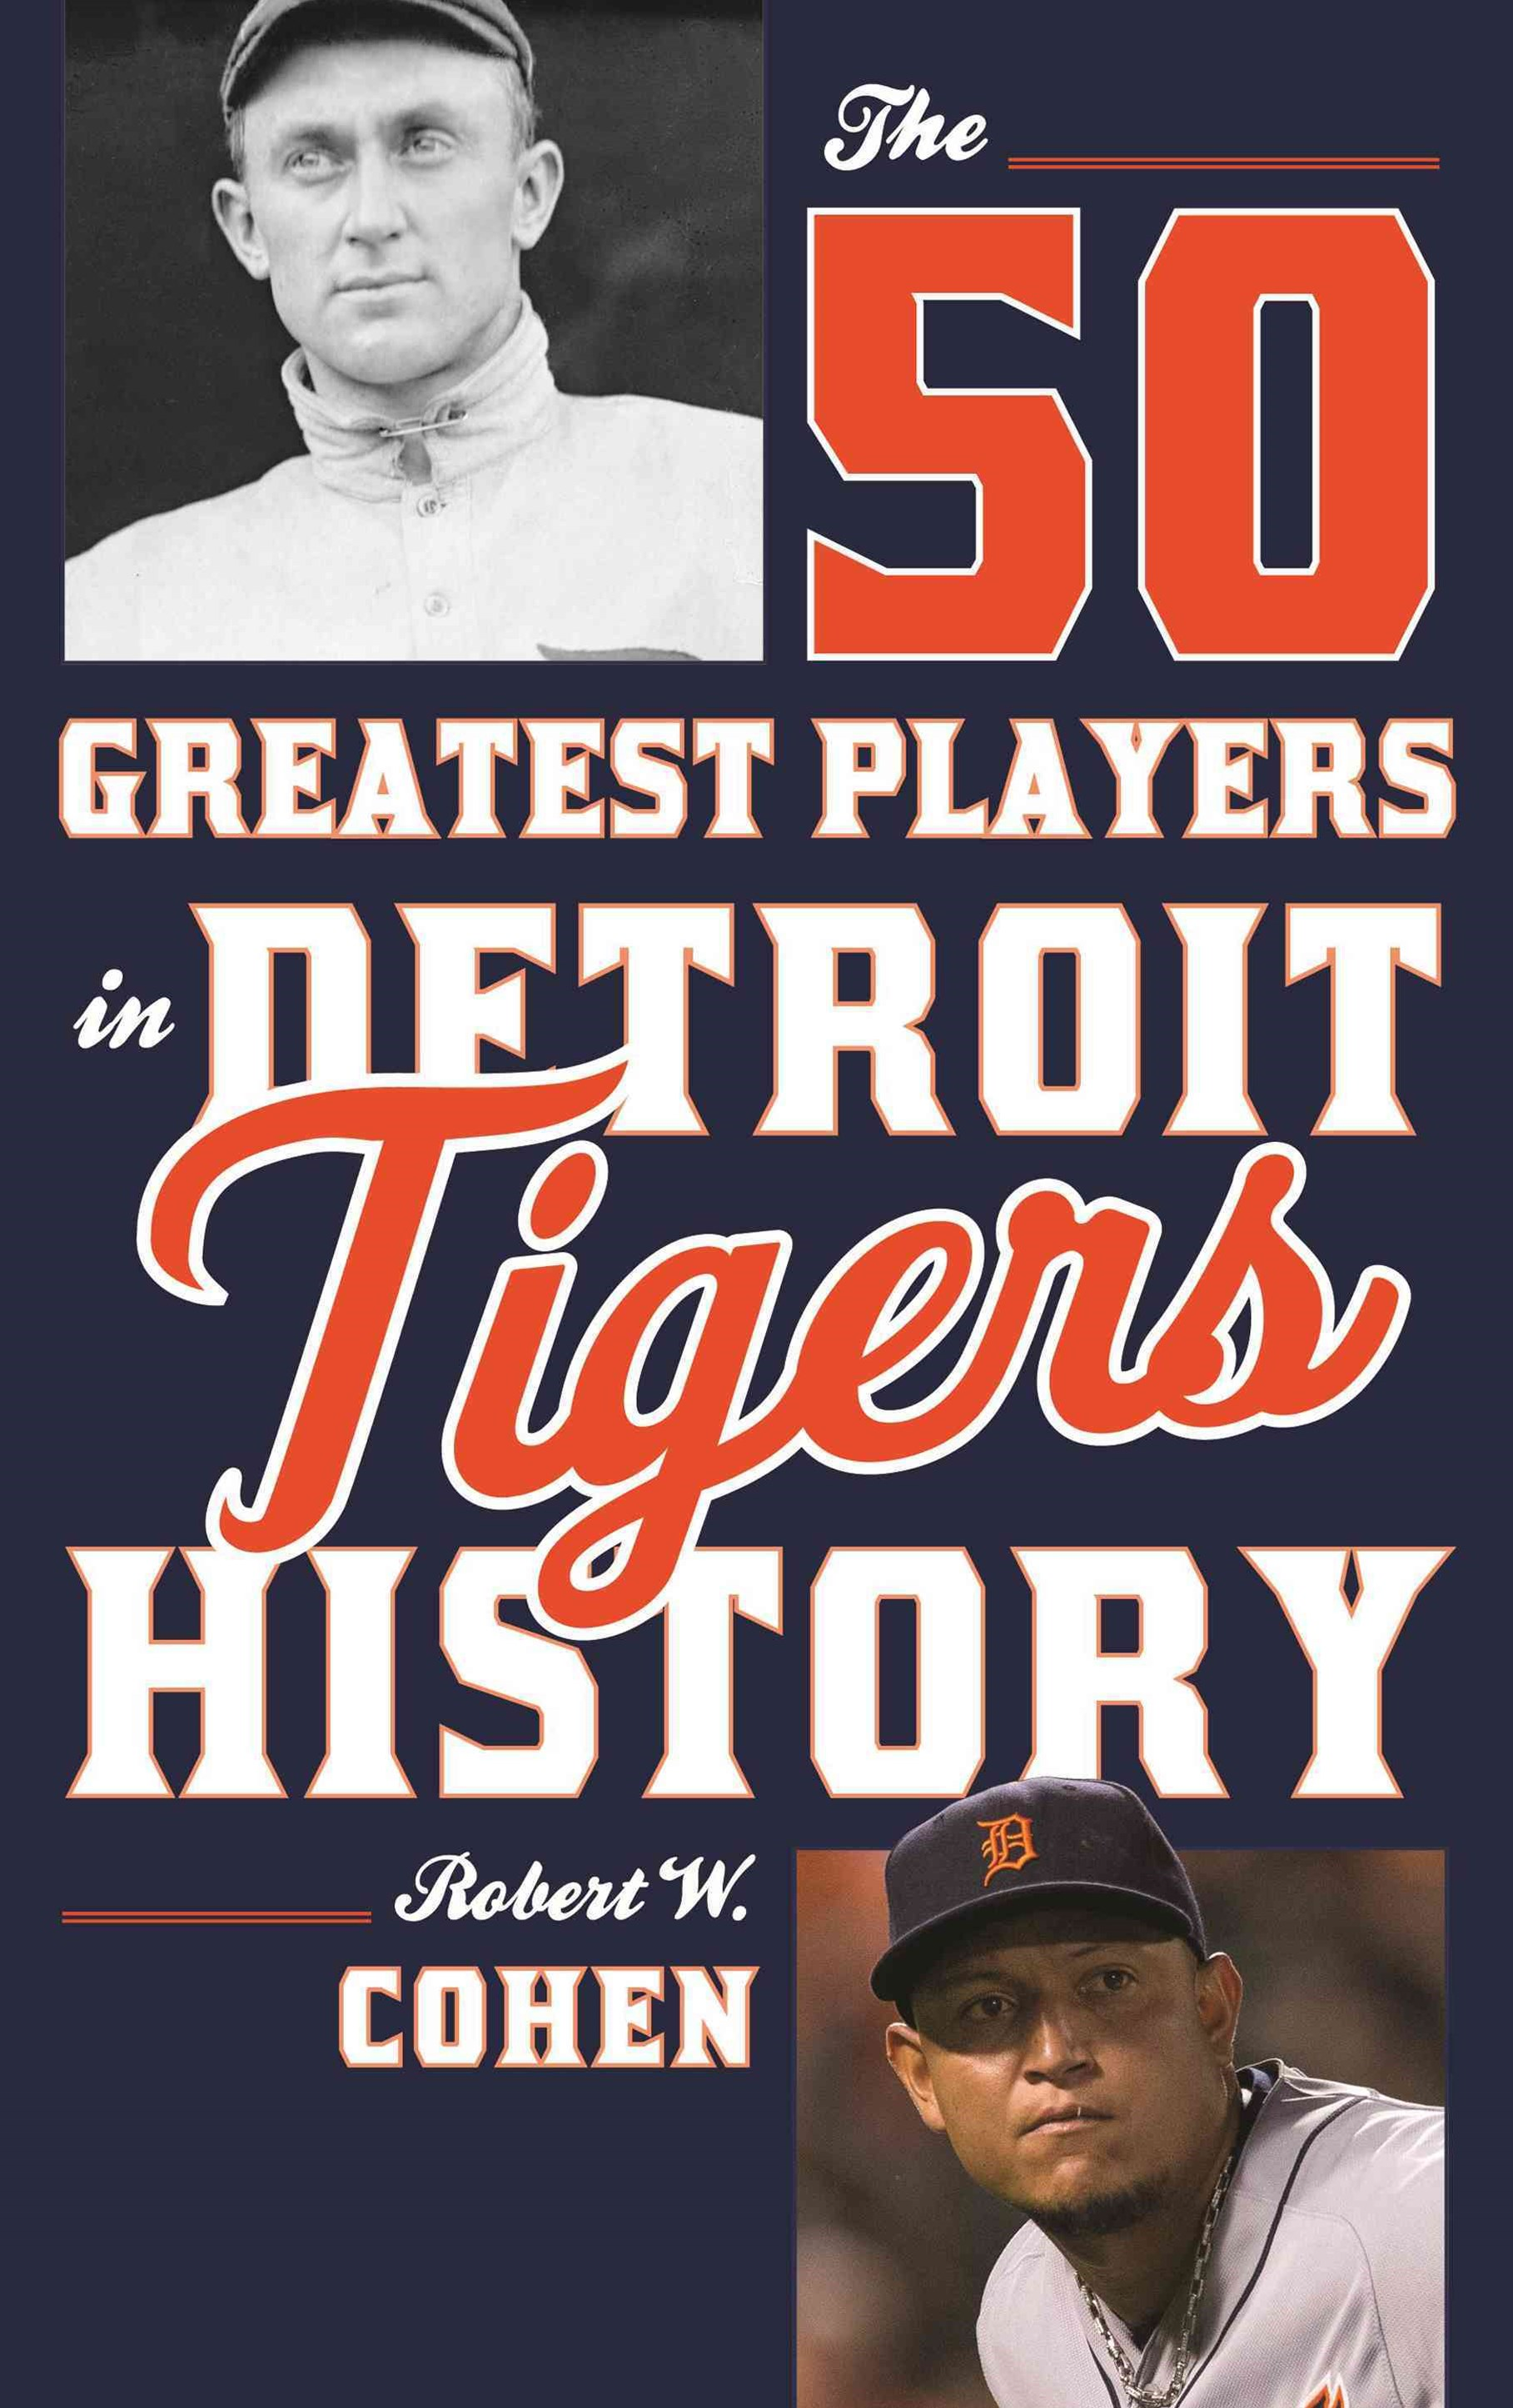 50 Greatest Players in Detroitpb